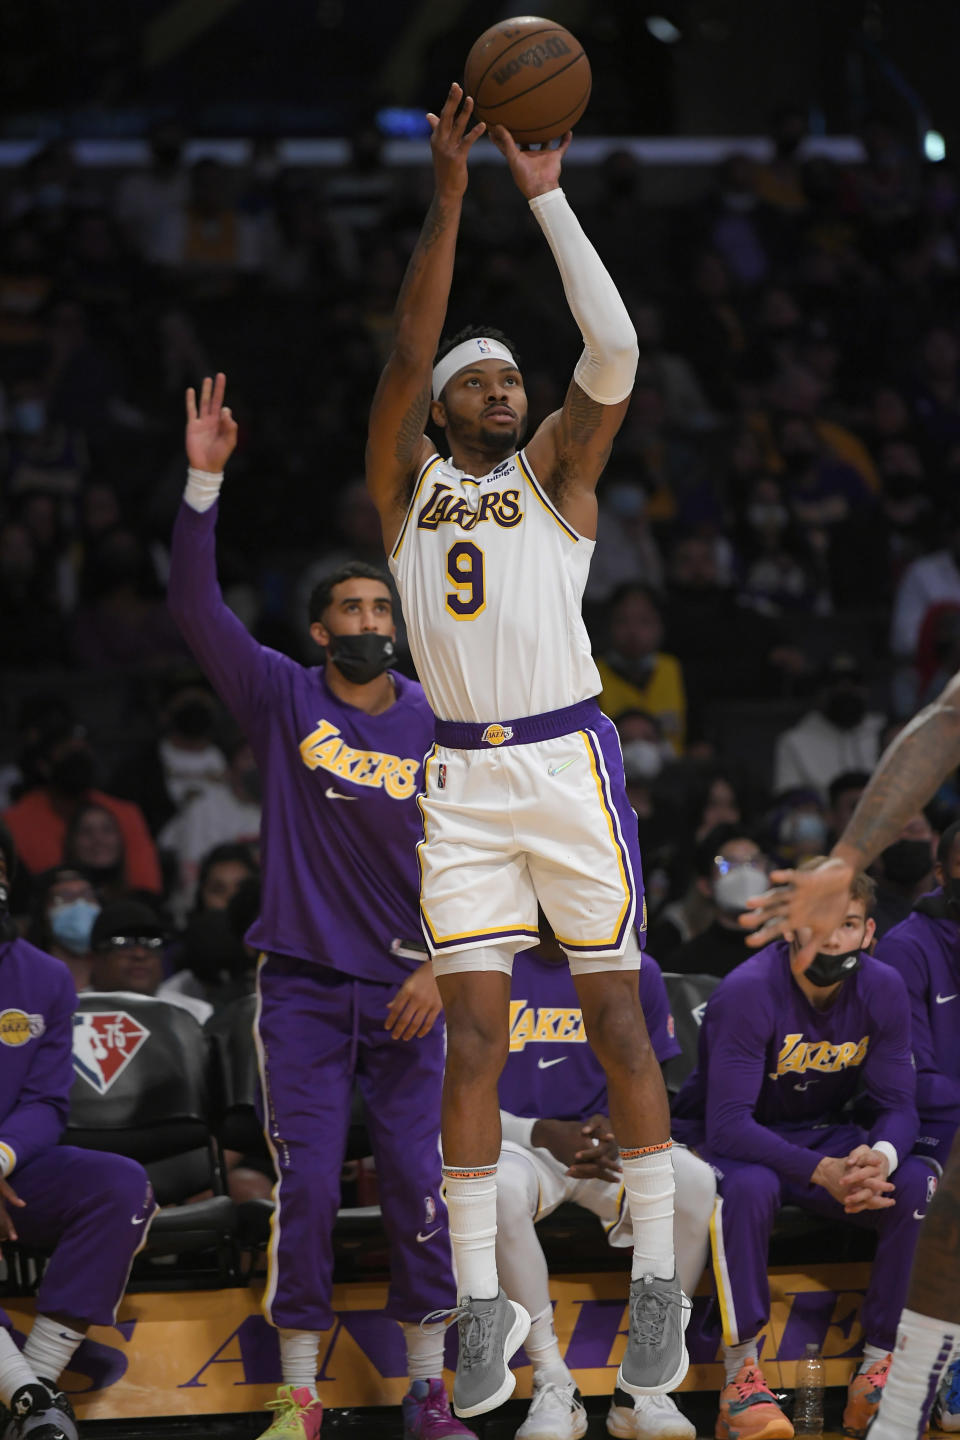 Los Angeles Lakers forward Kent Bazemore (9) takes a jumpshot against the Phoenix Suns in the second half of a preseason NBA basketball game in Los Angeles, Sunday, Oct. 10, 2021. (AP Photo/John McCoy)